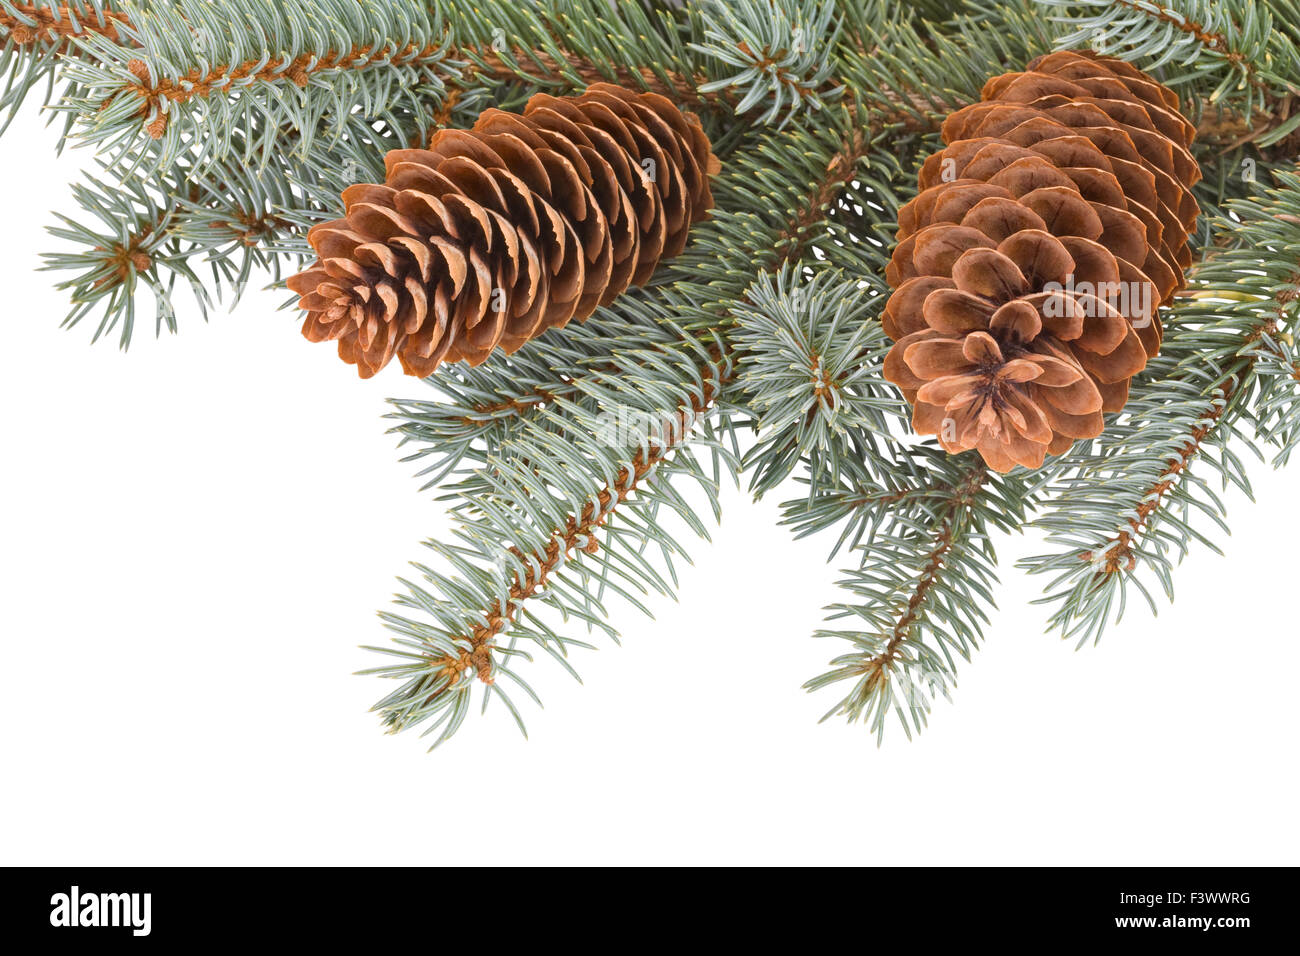 fir tree branches with pinecones - Stock Image